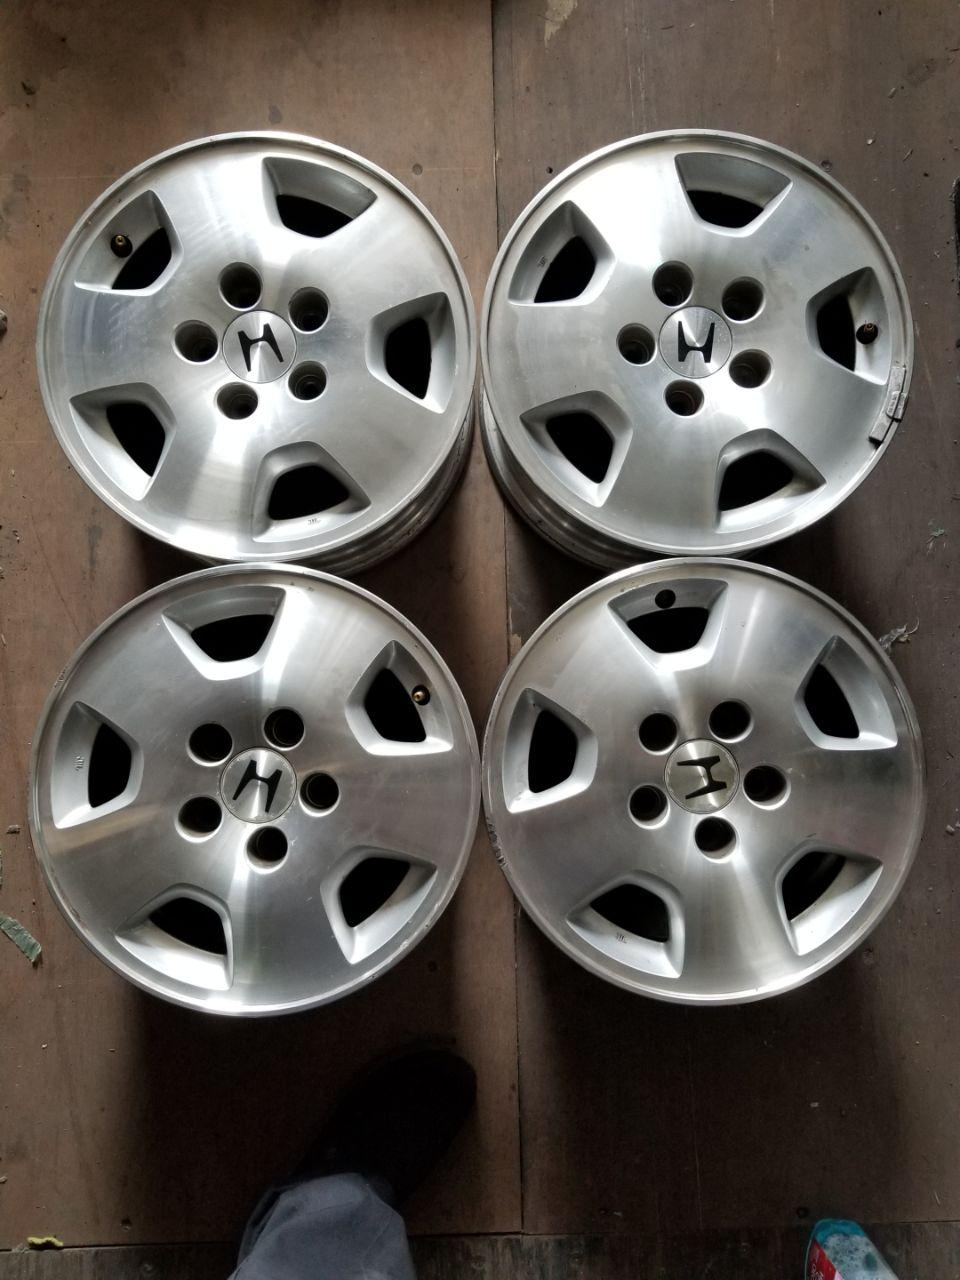 - OEM WHEELS - 2001-2002 HONDA ACCORD 15x6.5 5 SPOKE Hollander #63836 /  USED